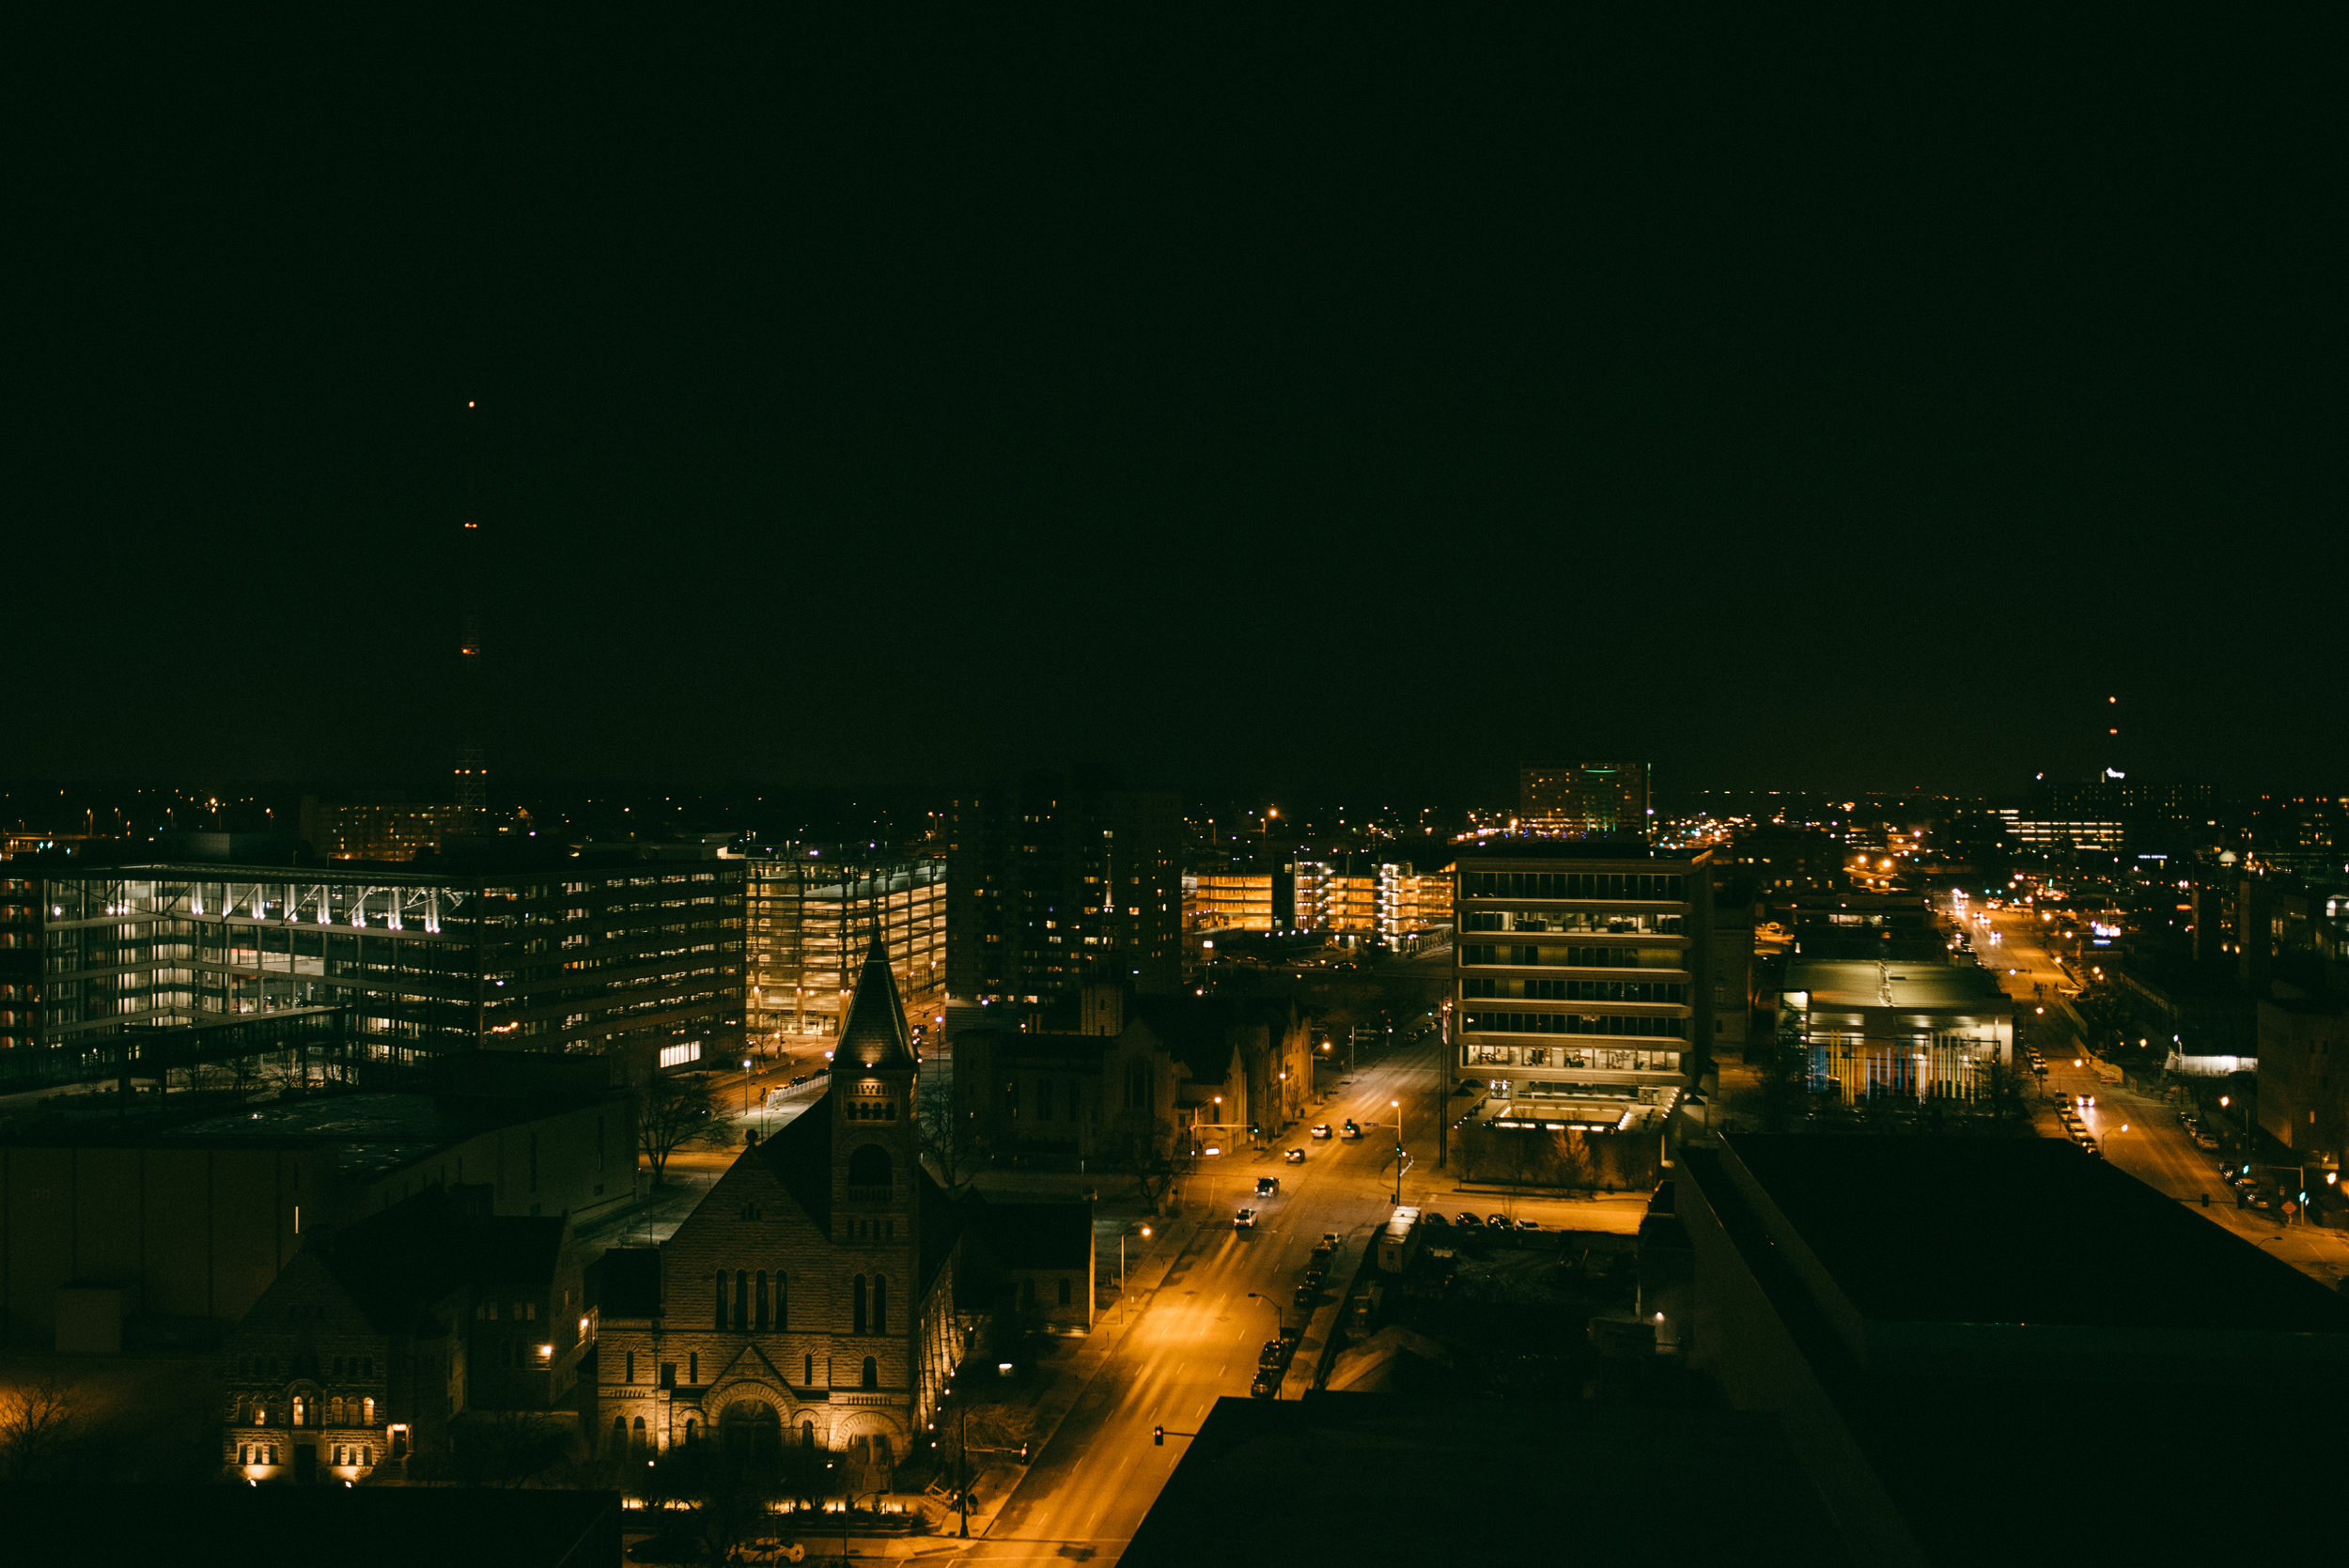 One of the reasons I named this site Say Hello to the City and not something like Say Hello to Des Moines was because I didn't want to be boxed in geographically. -